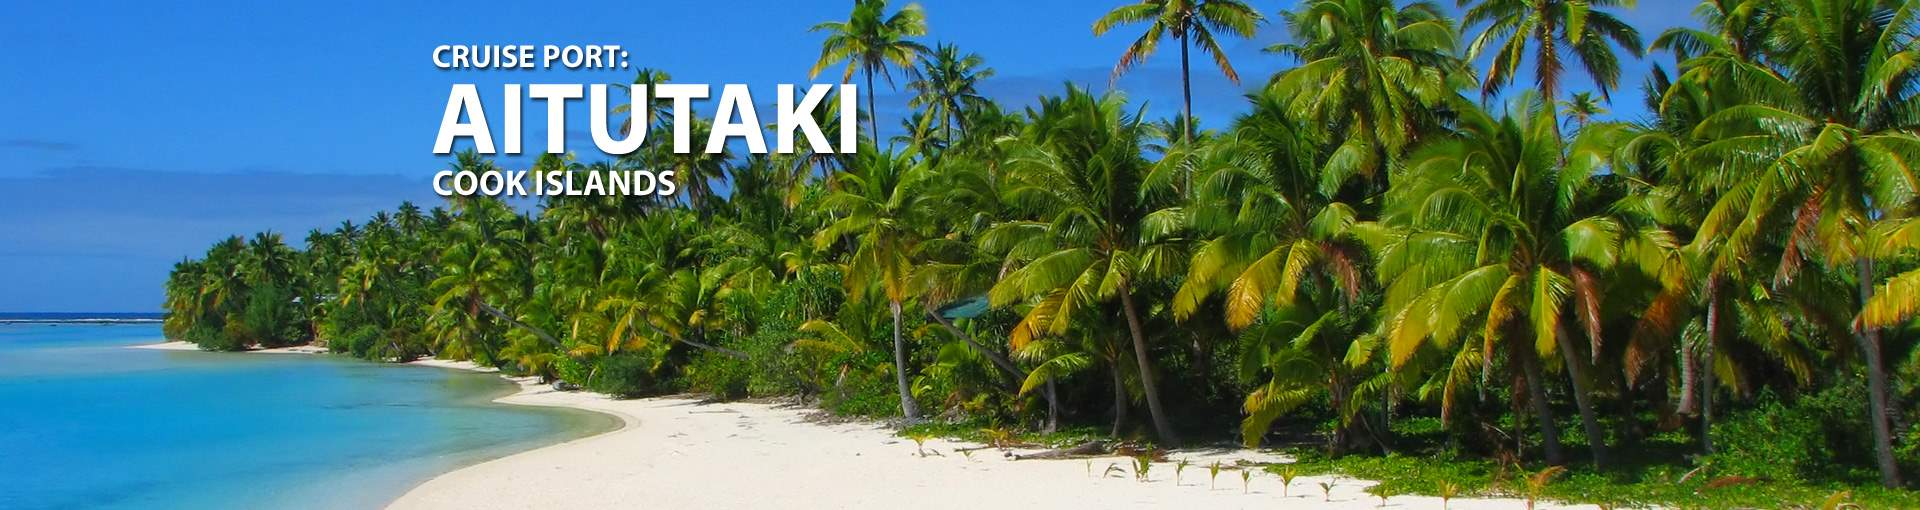 Cruises to Aitutaki, Cook Islands